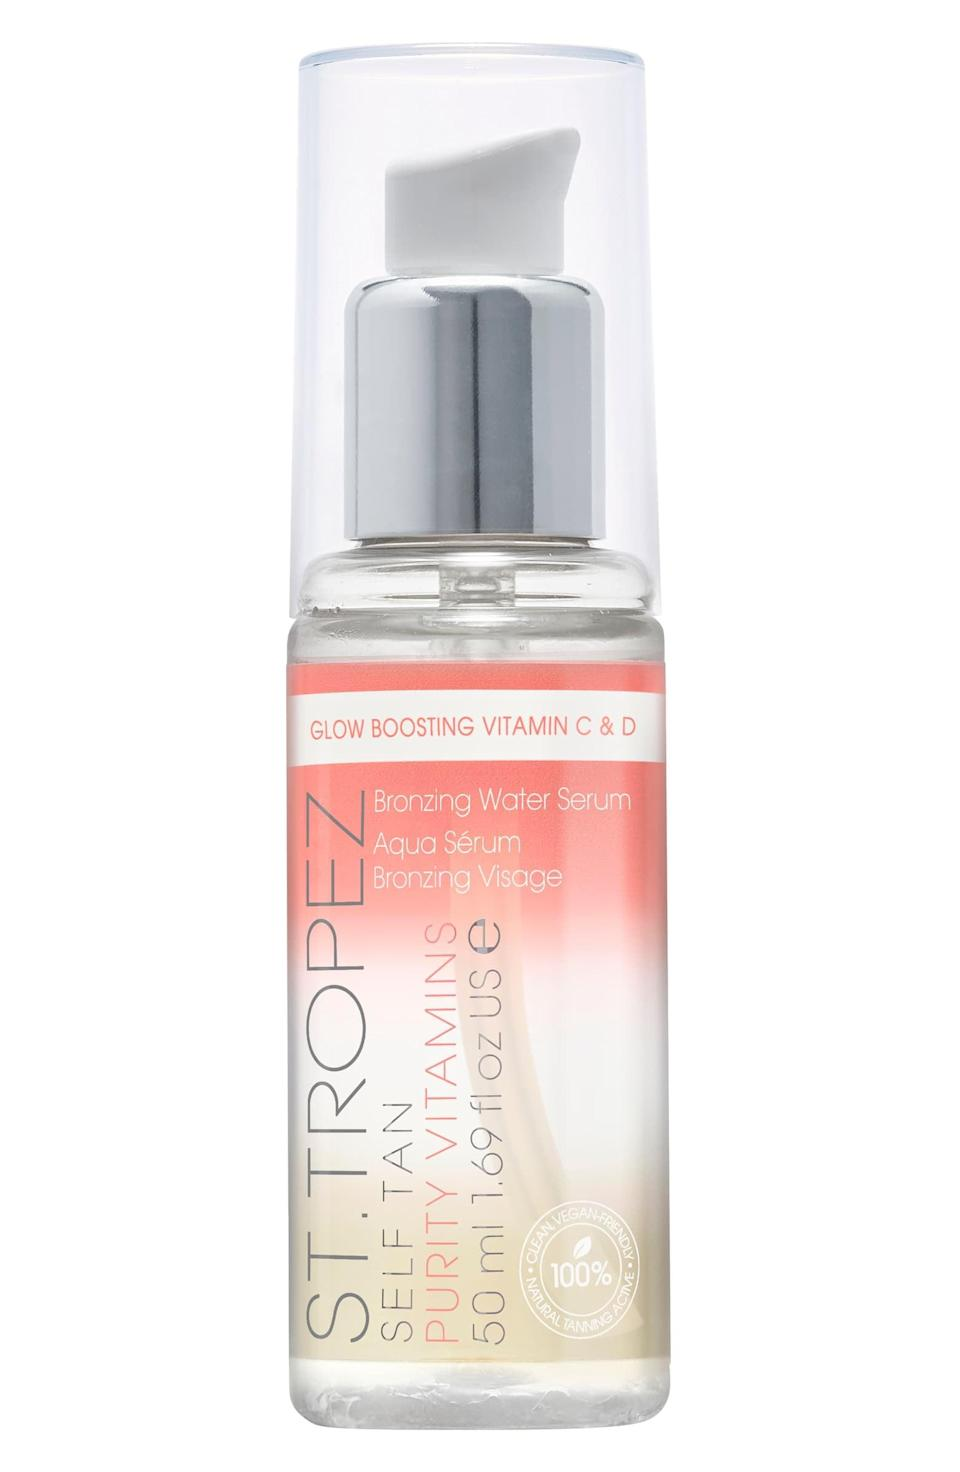 "<p>""Keeping my face thoroughly protected from the sun often means I have to look elsewhere for a little glow, and lately I've been reaching for the <a href=""https://www.popsugar.com/buy/St-Tropez-Self-Tan-Purity-Vitamins-Bronzing-Water-Face-Serum-578764?p_name=St.%20Tropez%20Self%20Tan%20Purity%20Vitamins%20Bronzing%20Water%20Face%20Serum&retailer=shop.nordstrom.com&pid=578764&price=30&evar1=bella%3Aus&evar9=47519595&evar98=https%3A%2F%2Fwww.popsugar.com%2Fbeauty%2Fphoto-gallery%2F47519595%2Fimage%2F47519644%2FSt-Tropez-Self-Tan-Purity-Vitamins-Bronzing-Water-Face-Serum&list1=must%20haves%2Ceditors%20pick%2Cskin%20care&prop13=mobile&pdata=1"" class=""link rapid-noclick-resp"" rel=""nofollow noopener"" target=""_blank"" data-ylk=""slk:St. Tropez Self Tan Purity Vitamins Bronzing Water Face Serum"">St. Tropez Self Tan Purity Vitamins Bronzing Water Face Serum</a> ($30). I mix a drop of this into my morning moisturizer to help even out and brighten my skin with hyaluronic acid and vitamins C+D. It gives me the faux-glow I'm looking for and does good things for me in the long run."" - Alanna Martine Kilkeary, associate beauty editor, Makeup.com and Skincare.com</p>"